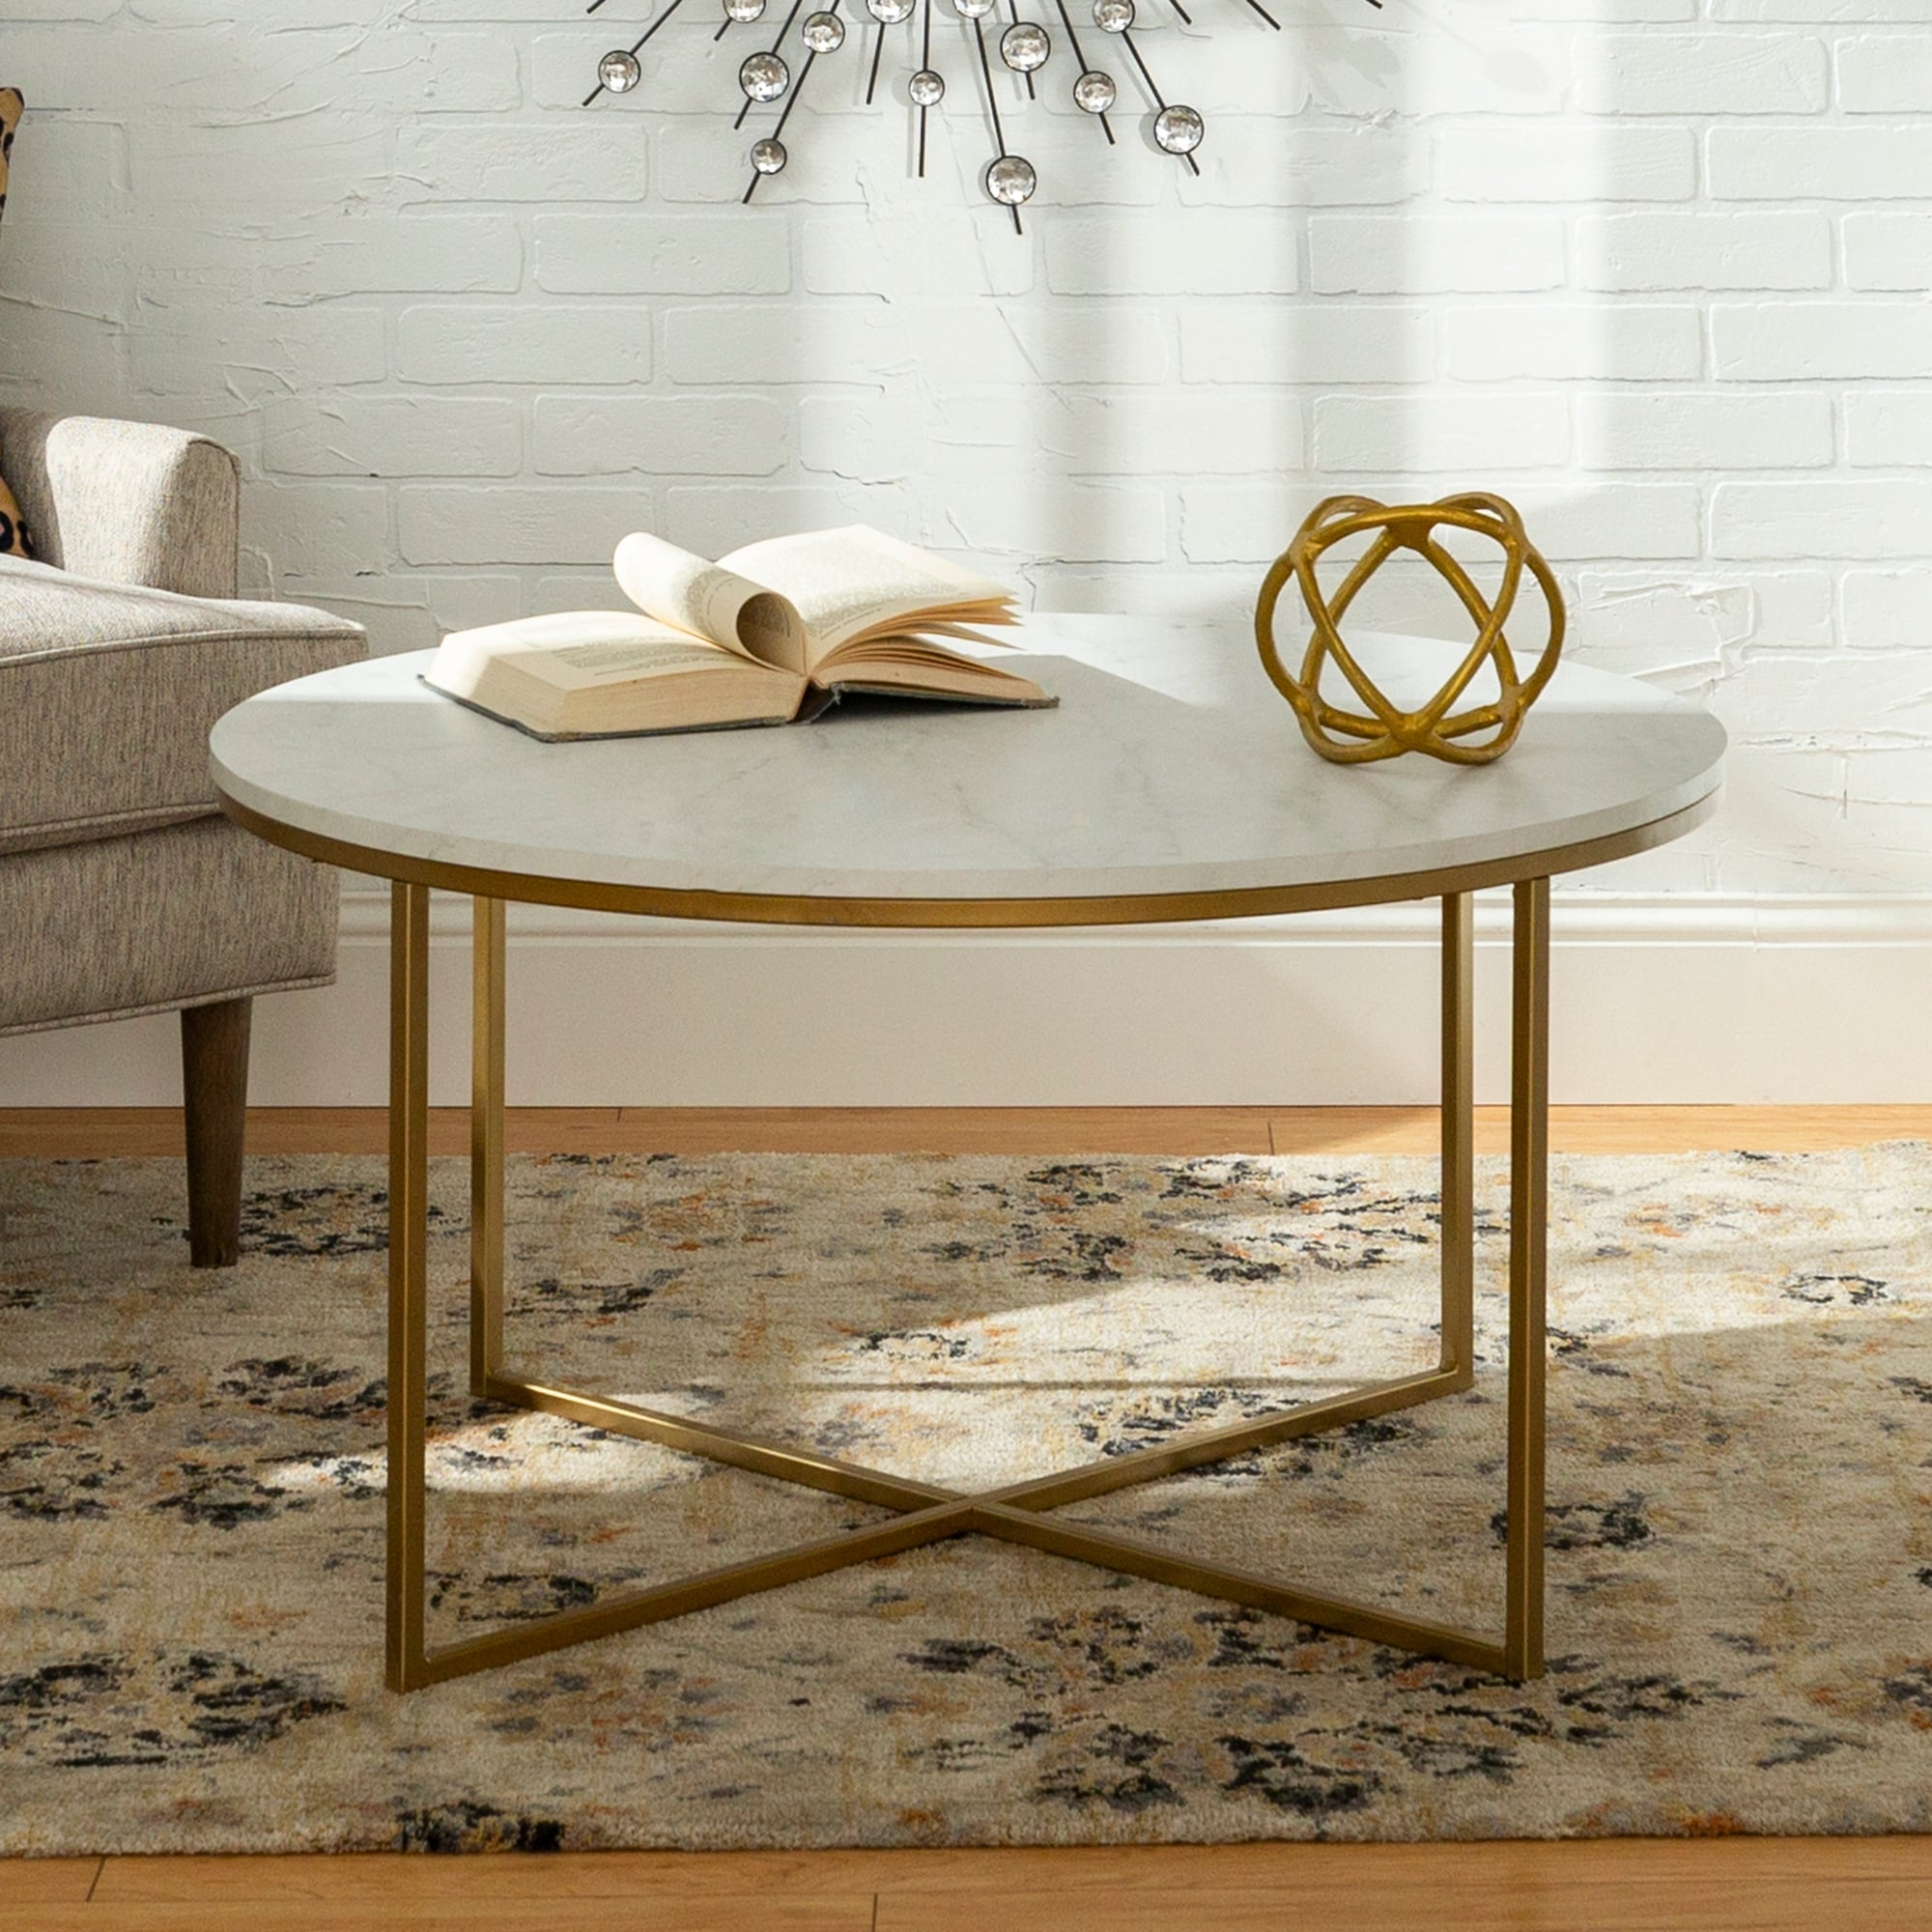 Silver Orchid Helbling 36 Inch Round Coffee Table On Sale Overstock 20616482